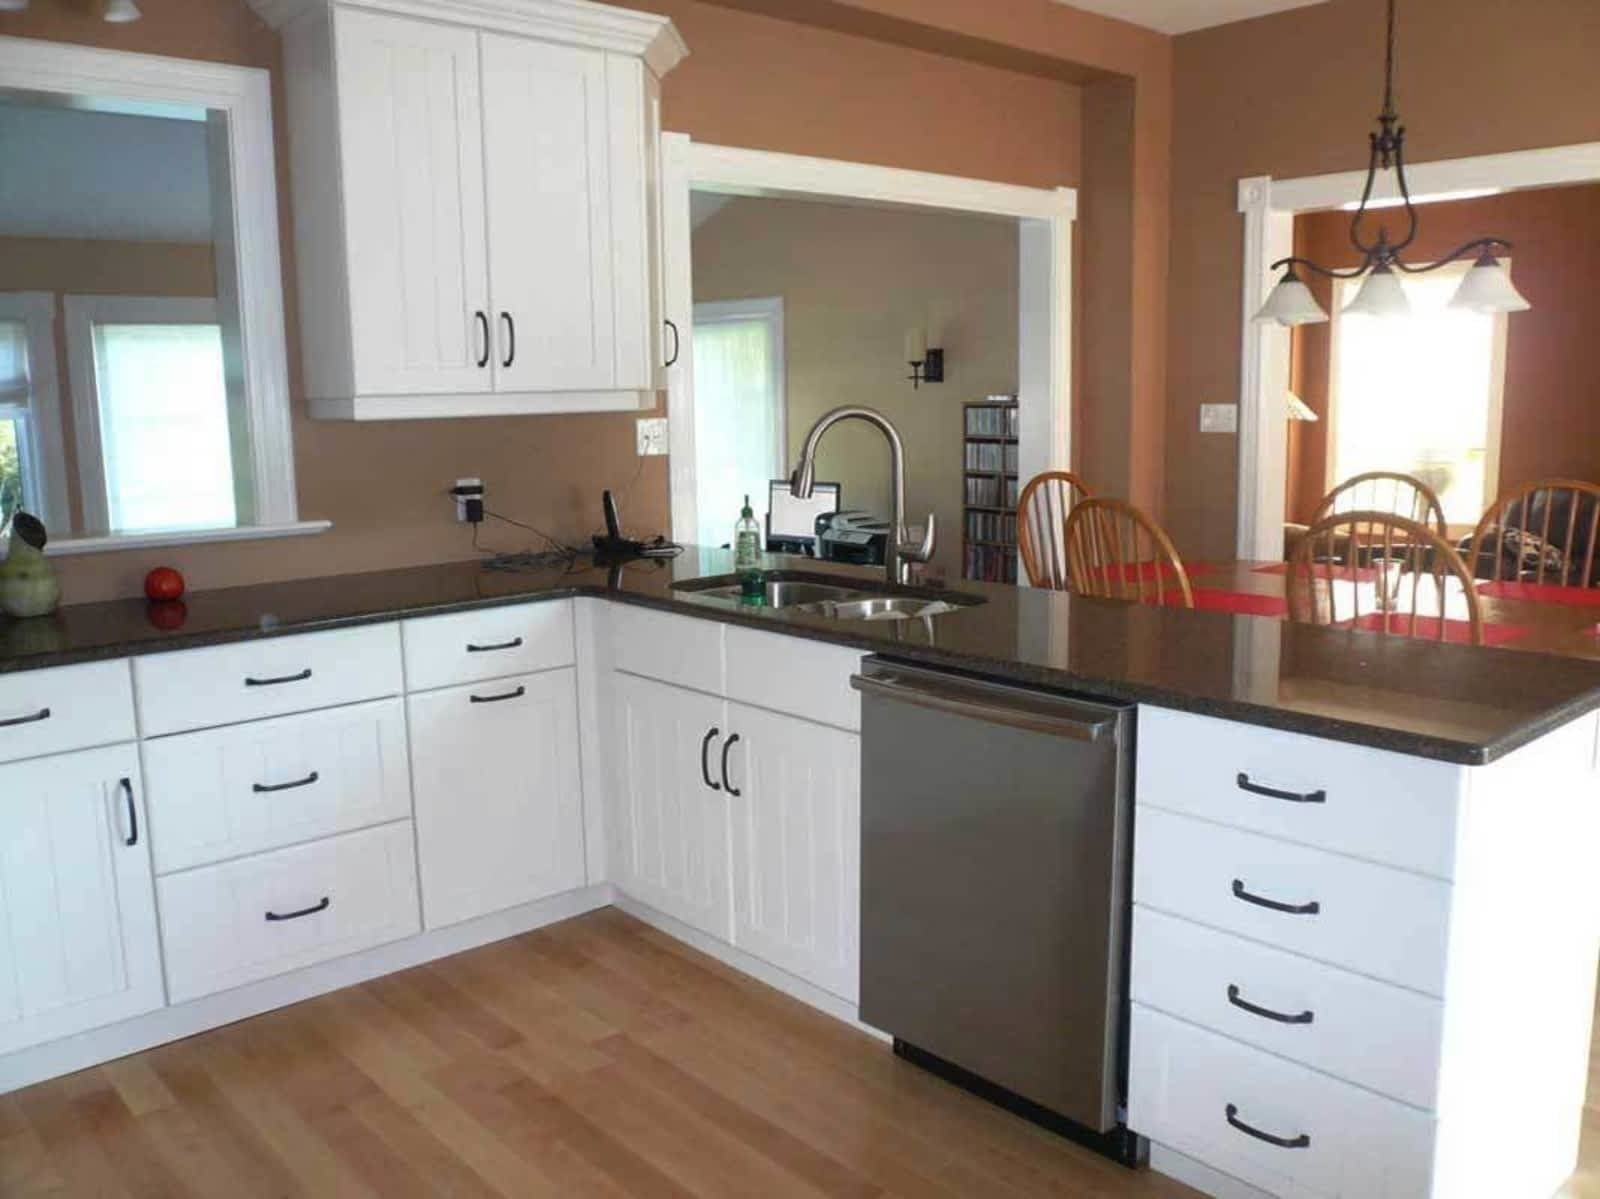 hgtv kitchen tips ideas distressed options pictures cabinets cabinetry remodel